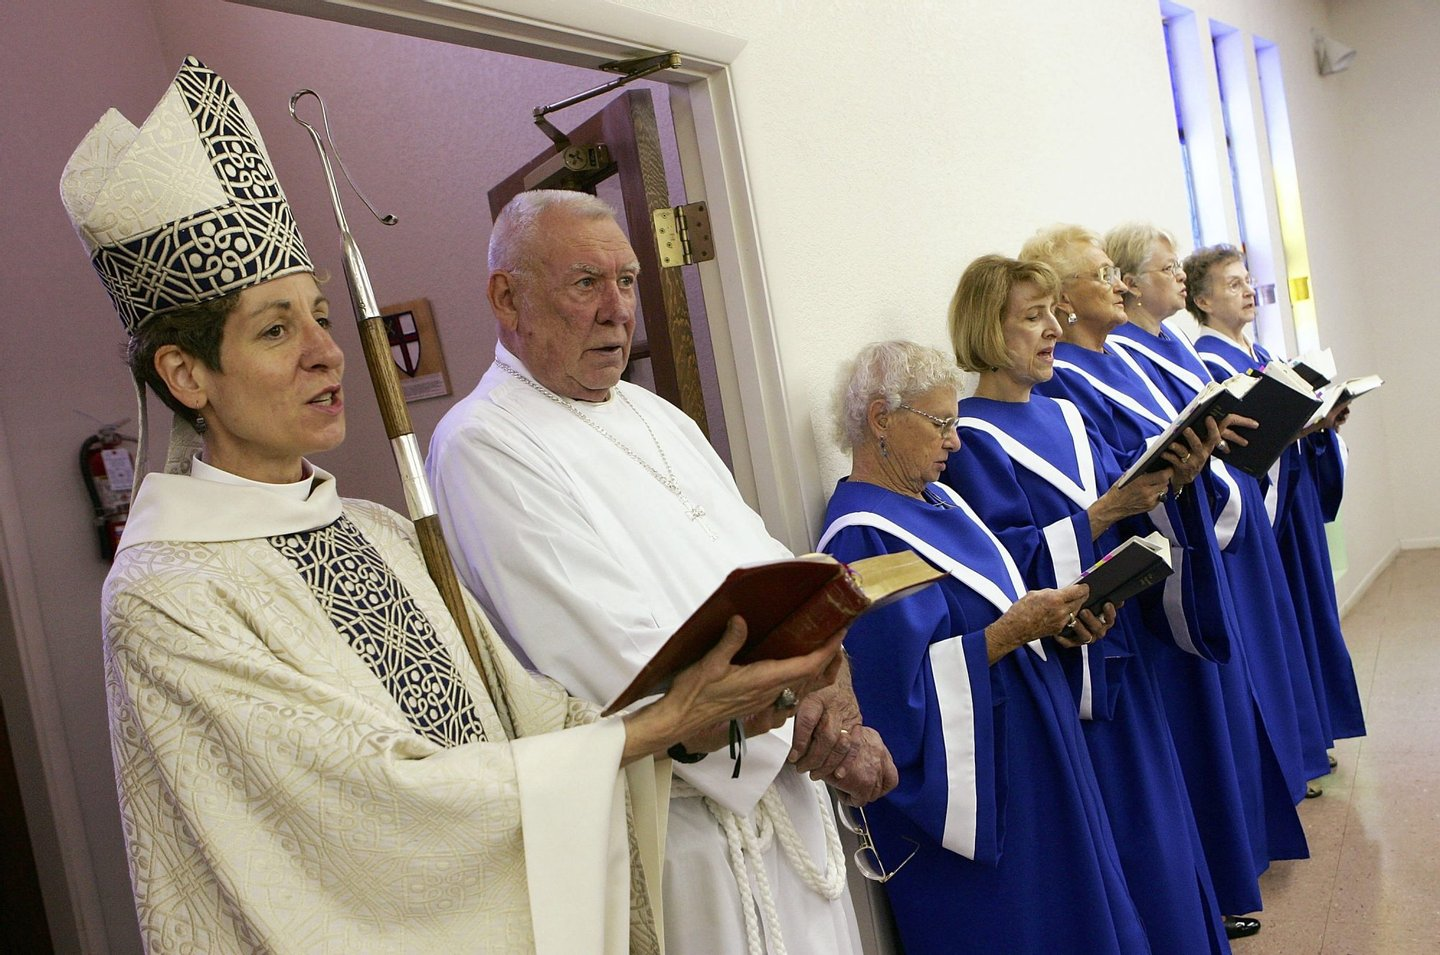 BULLHEAD CITY, AZ - JULY 02: Bishop Katharine Jefferts Schori (L) and chalice bearer Dick Studeny (2nd L) sing during the recessional of a service at The Episcopal Church of the Holy Spirit July 2, 2006 in Bullhead City, Arizona. Schori is the first female presiding bishop-elect for the Episcopal Church. (Photo by Ethan Miller/Getty Images)